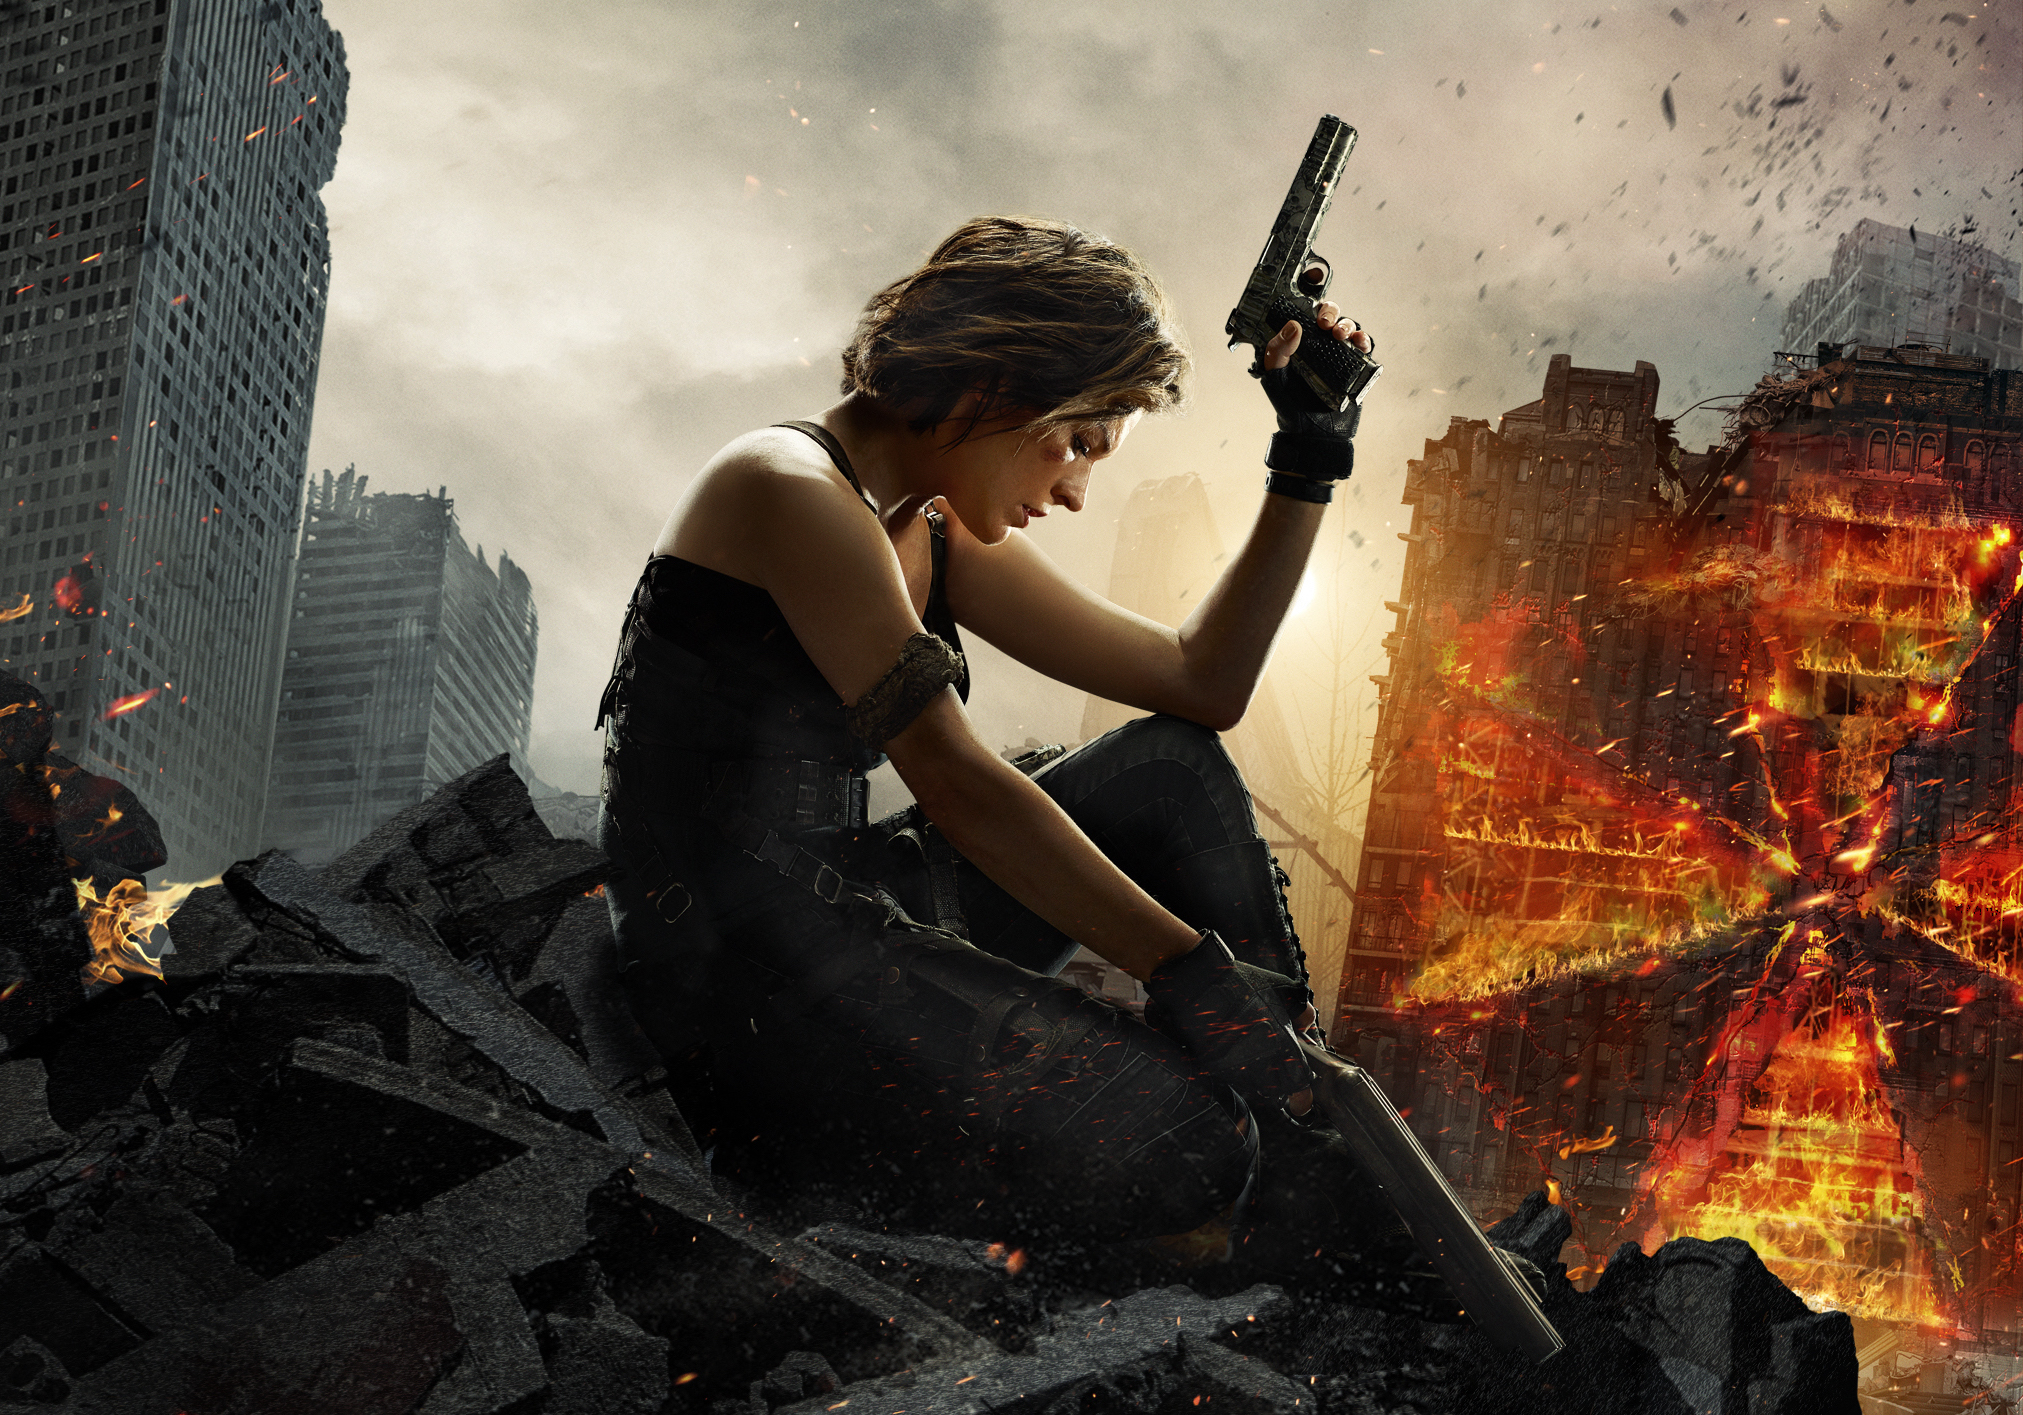 NYCC: Alice Goes Back to the Beginning in New 'Resident Evil: The Final Chapter' Trailer